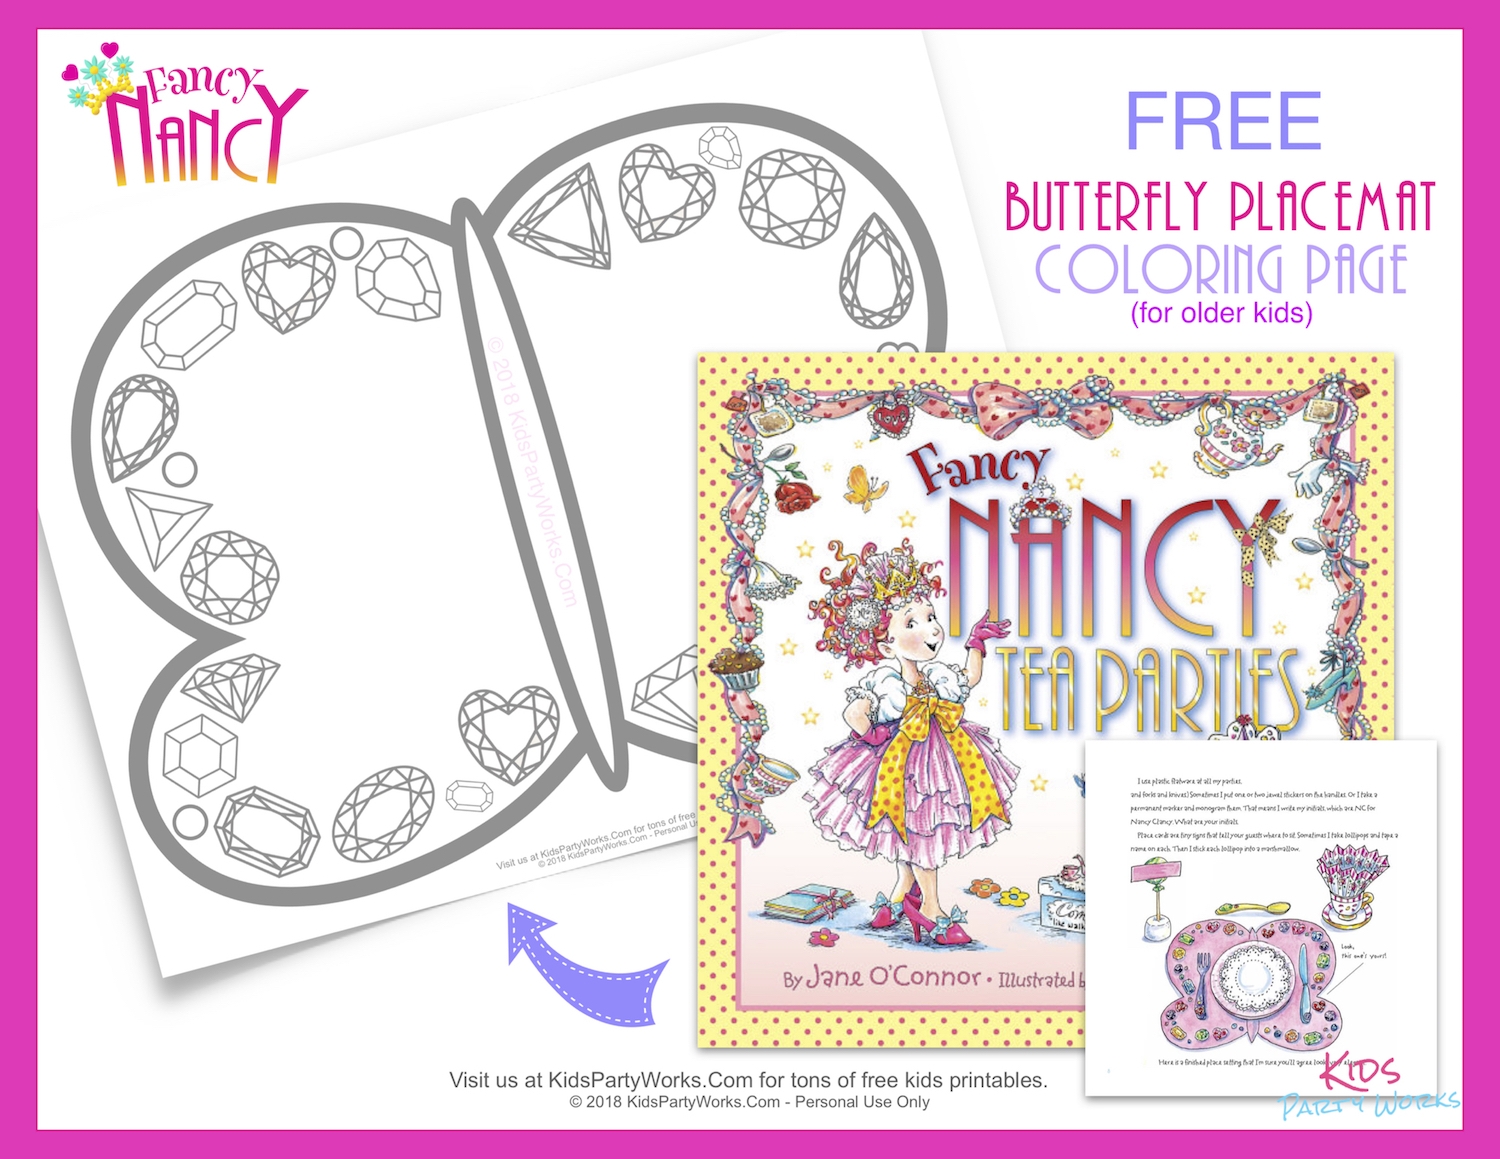 Kids will have fun coloring this Free printable Fancy Nancy Tea Parties butterfly placemat with beautiful gems, just like in the book.